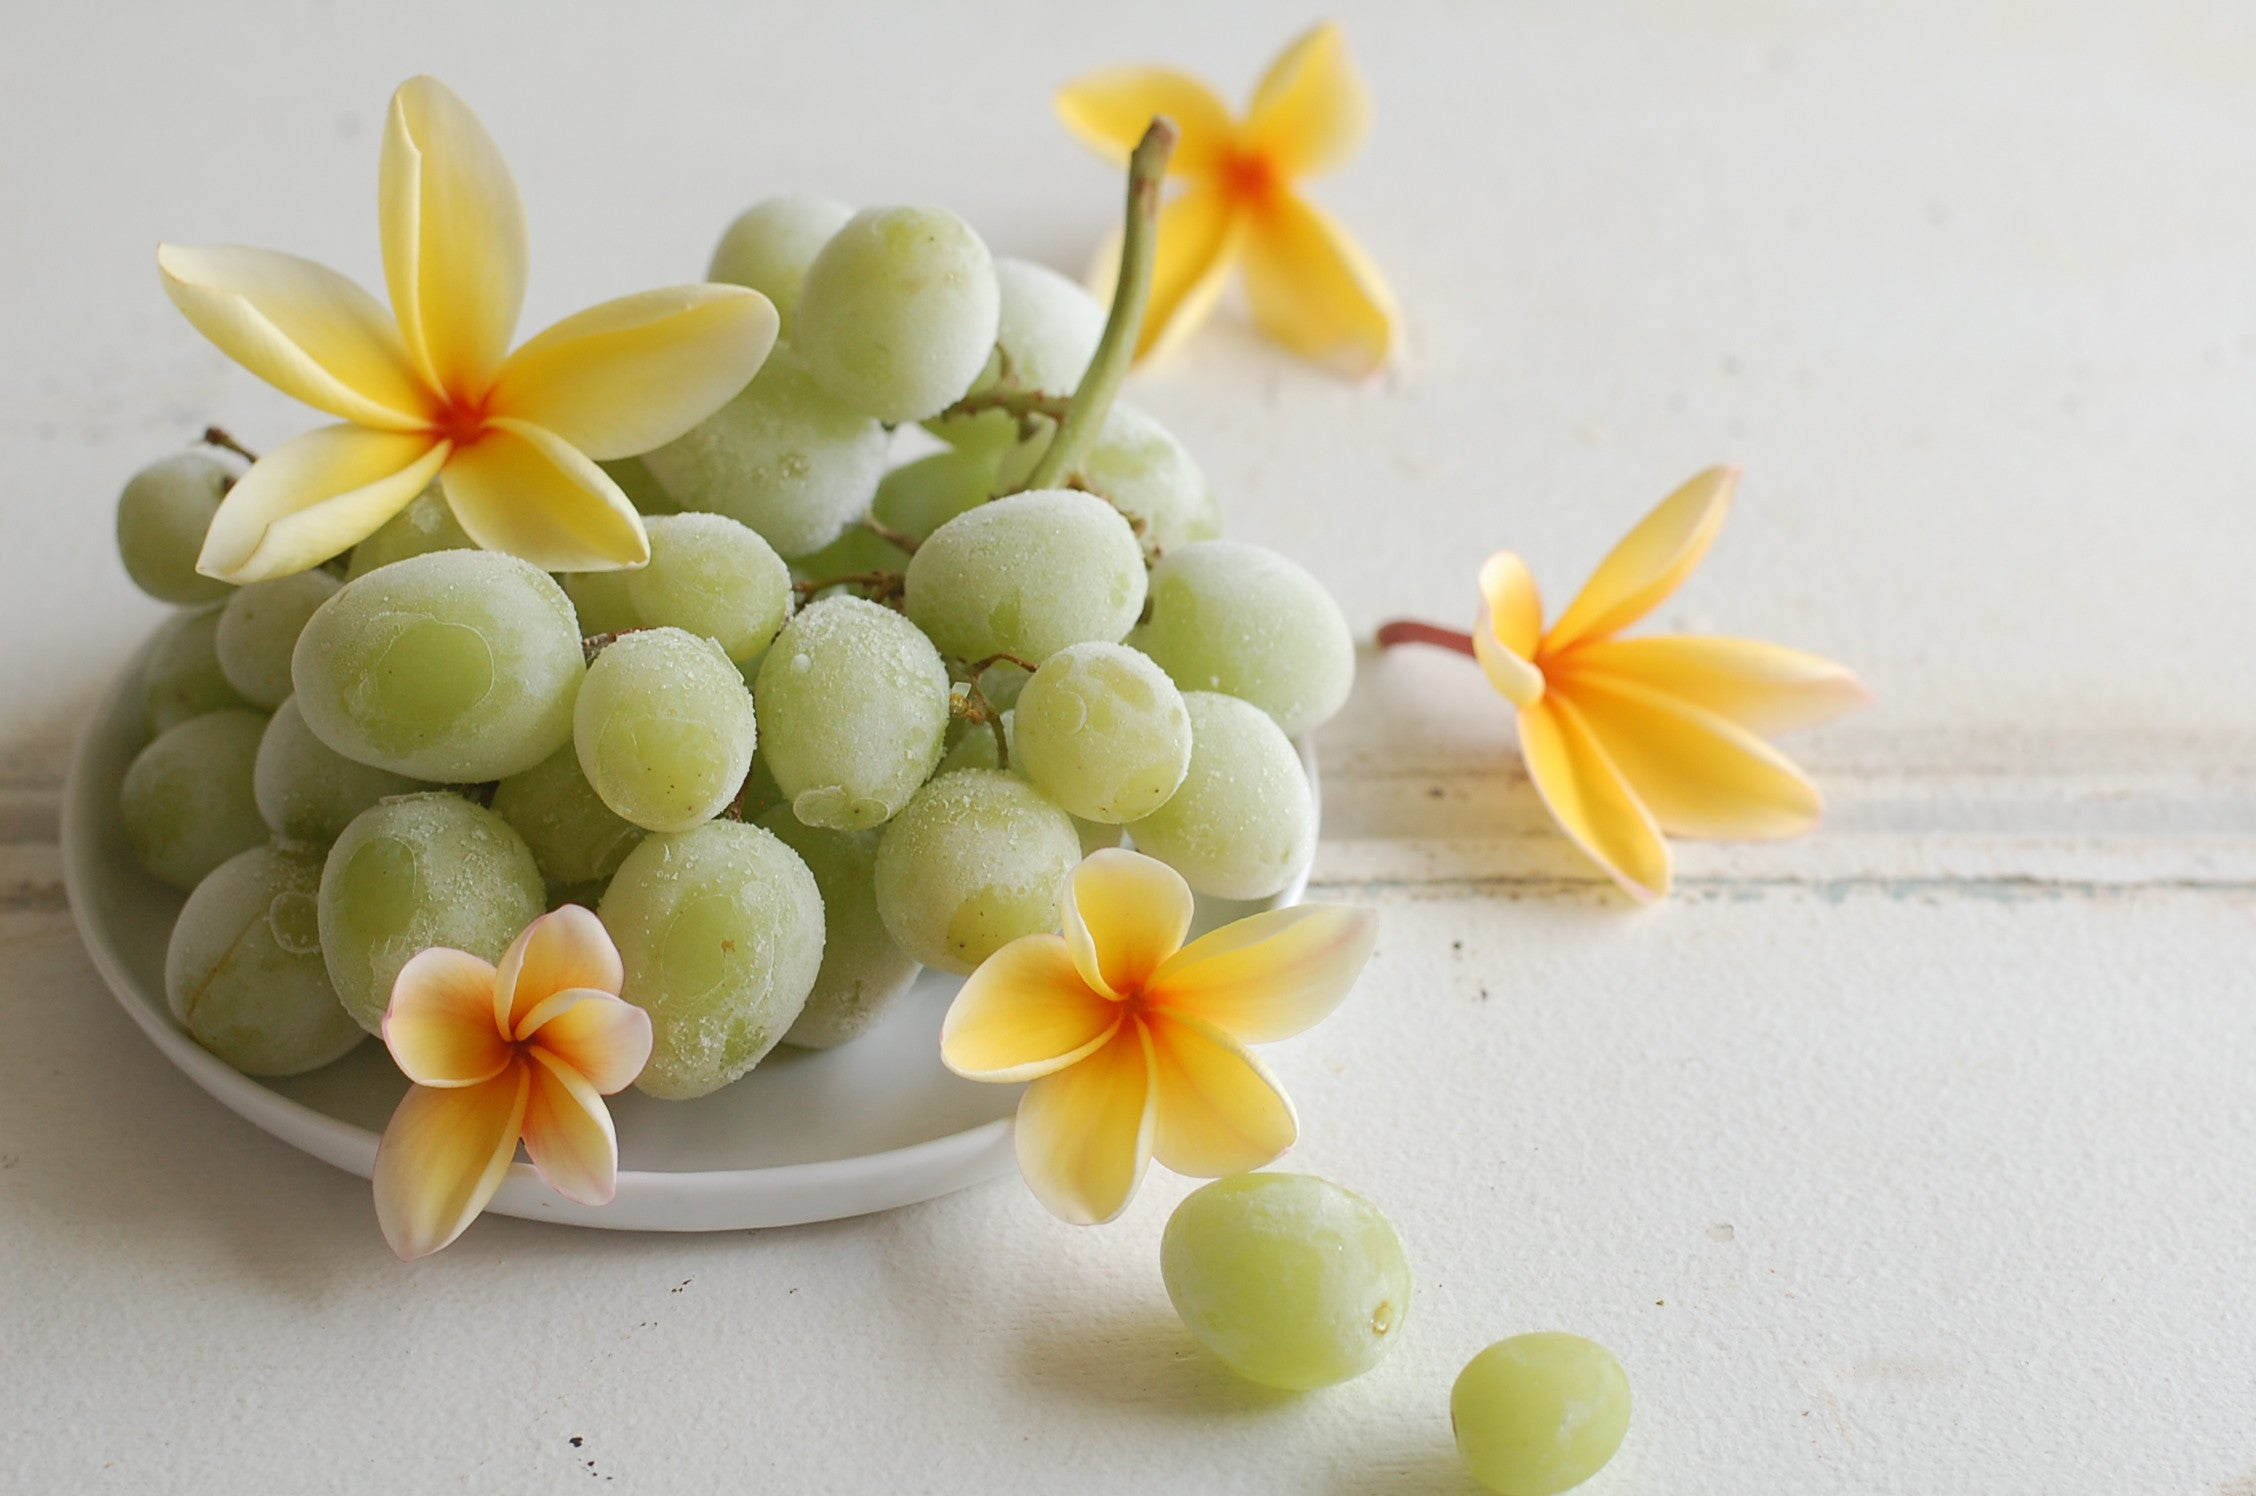 frozen grapes for summer time snacking